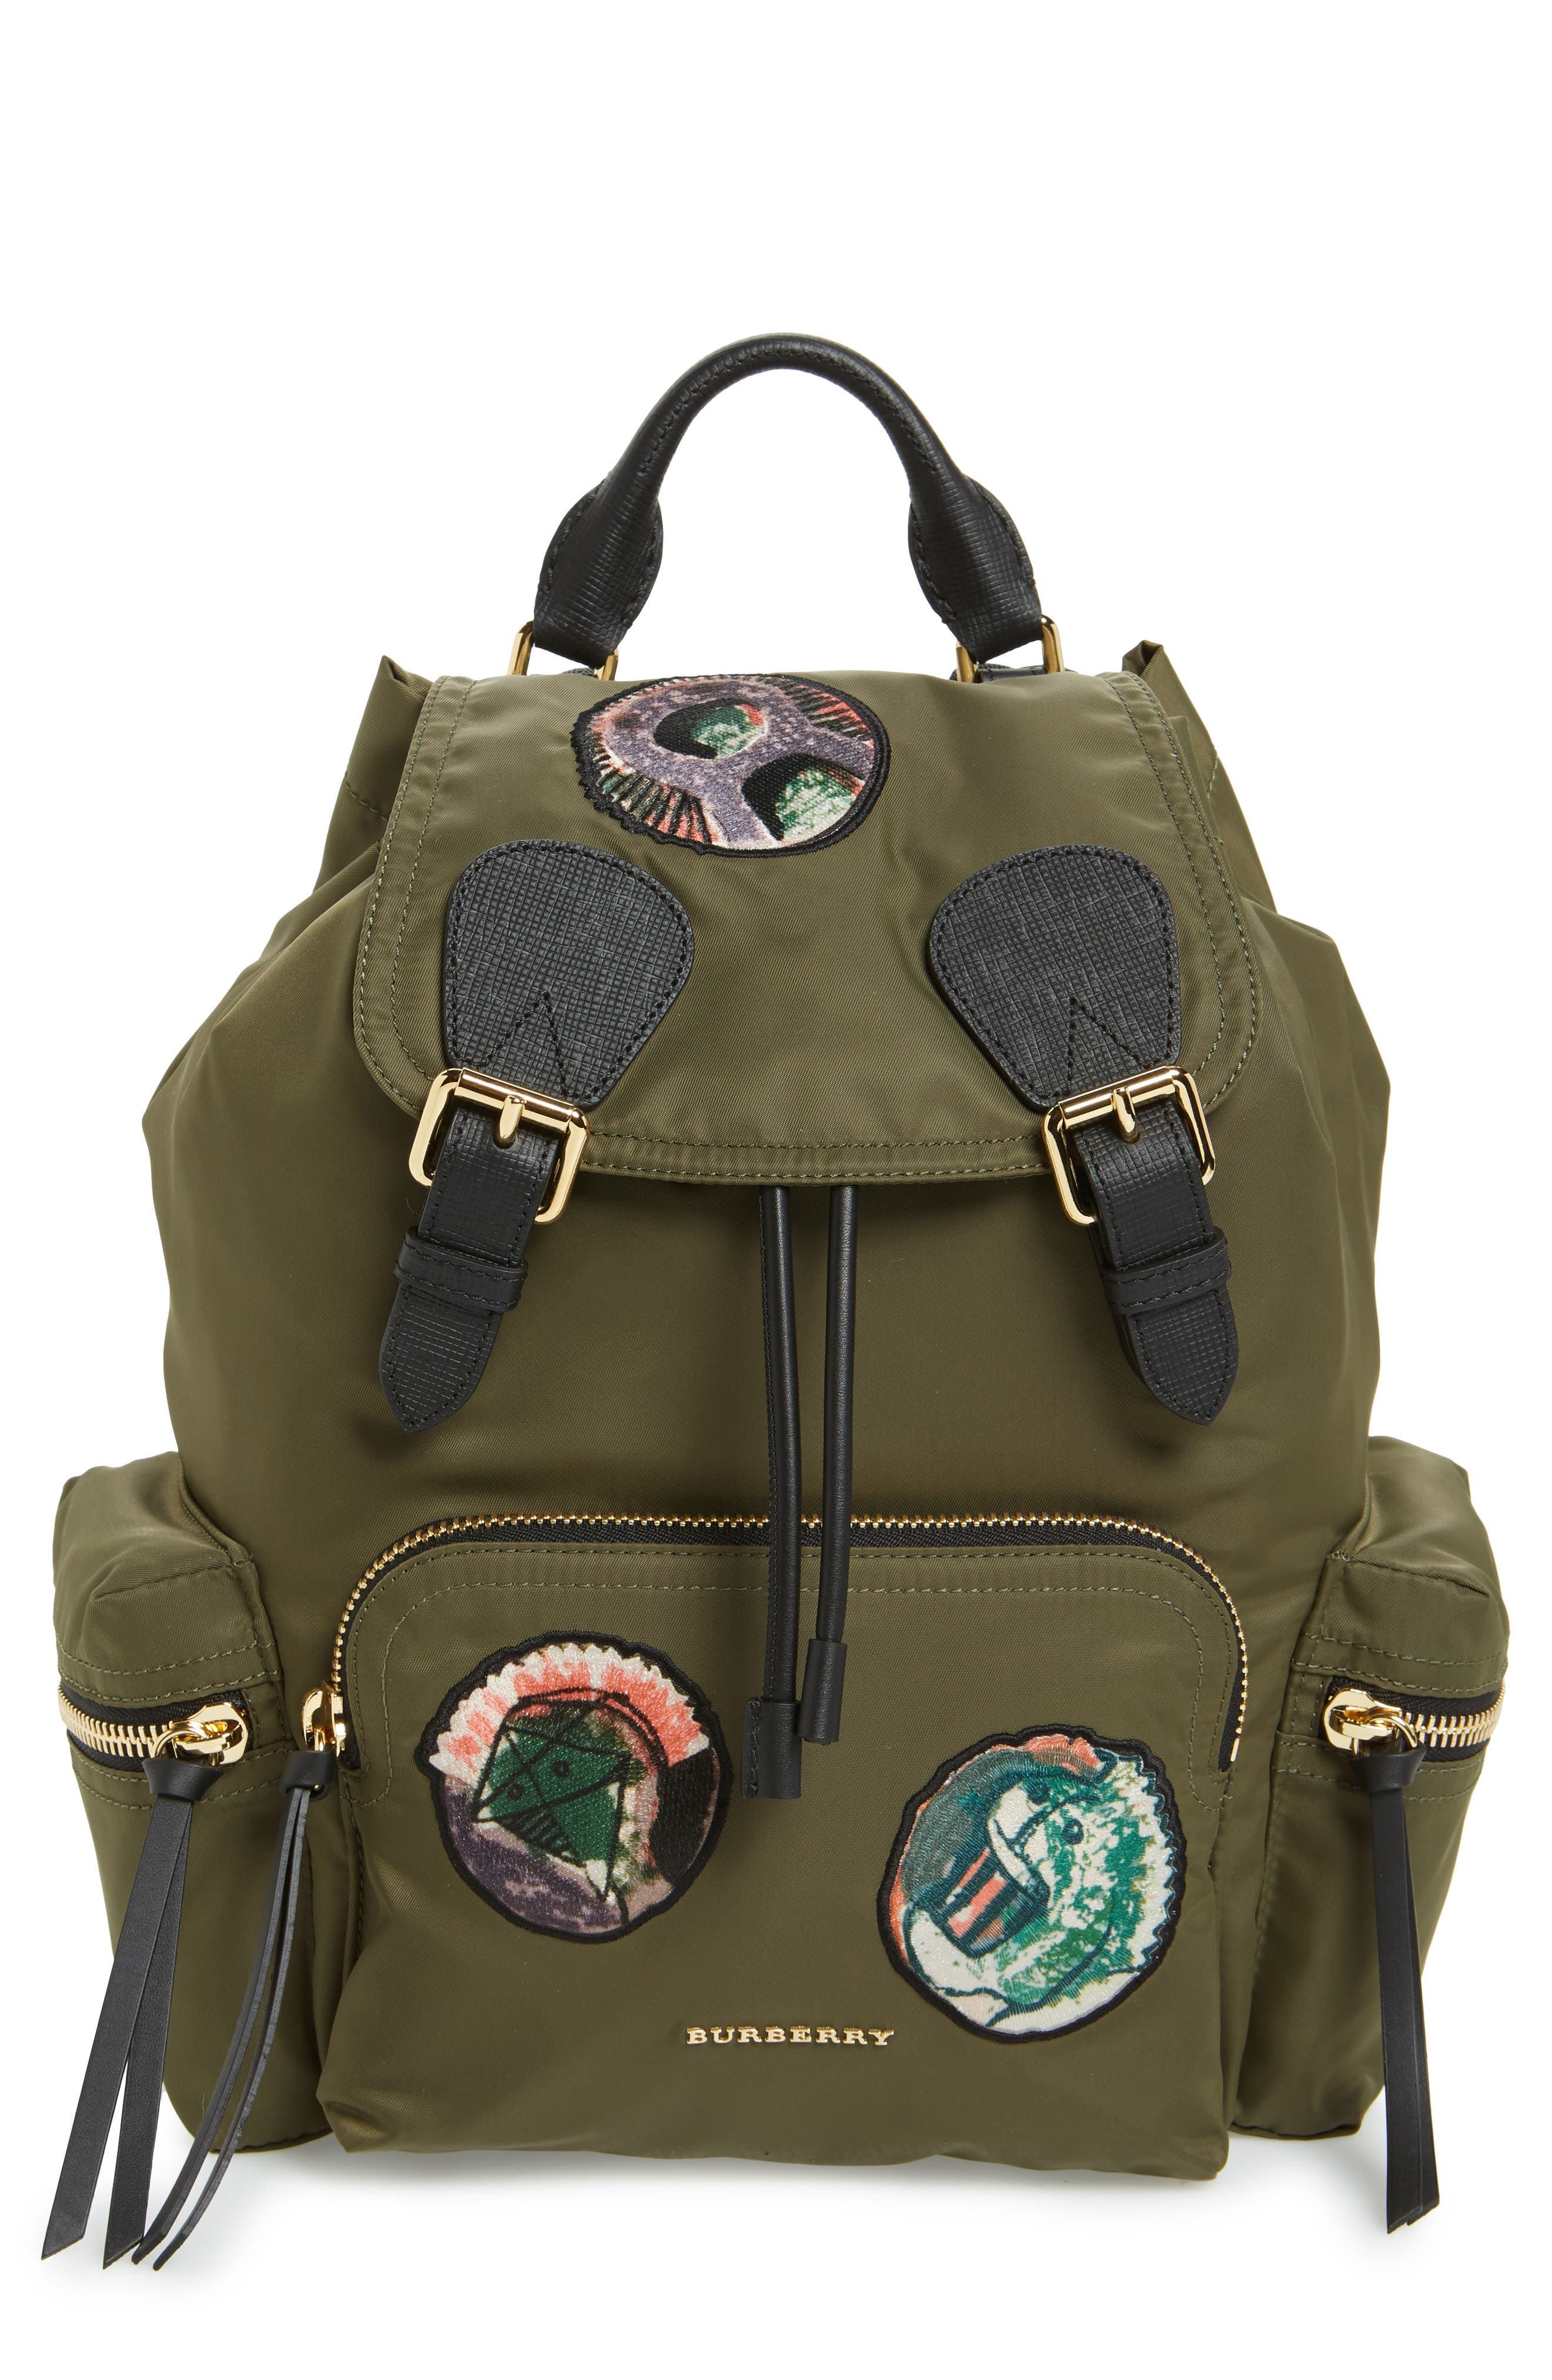 Burberry Medium Patches Rucksack Nylon Backpack